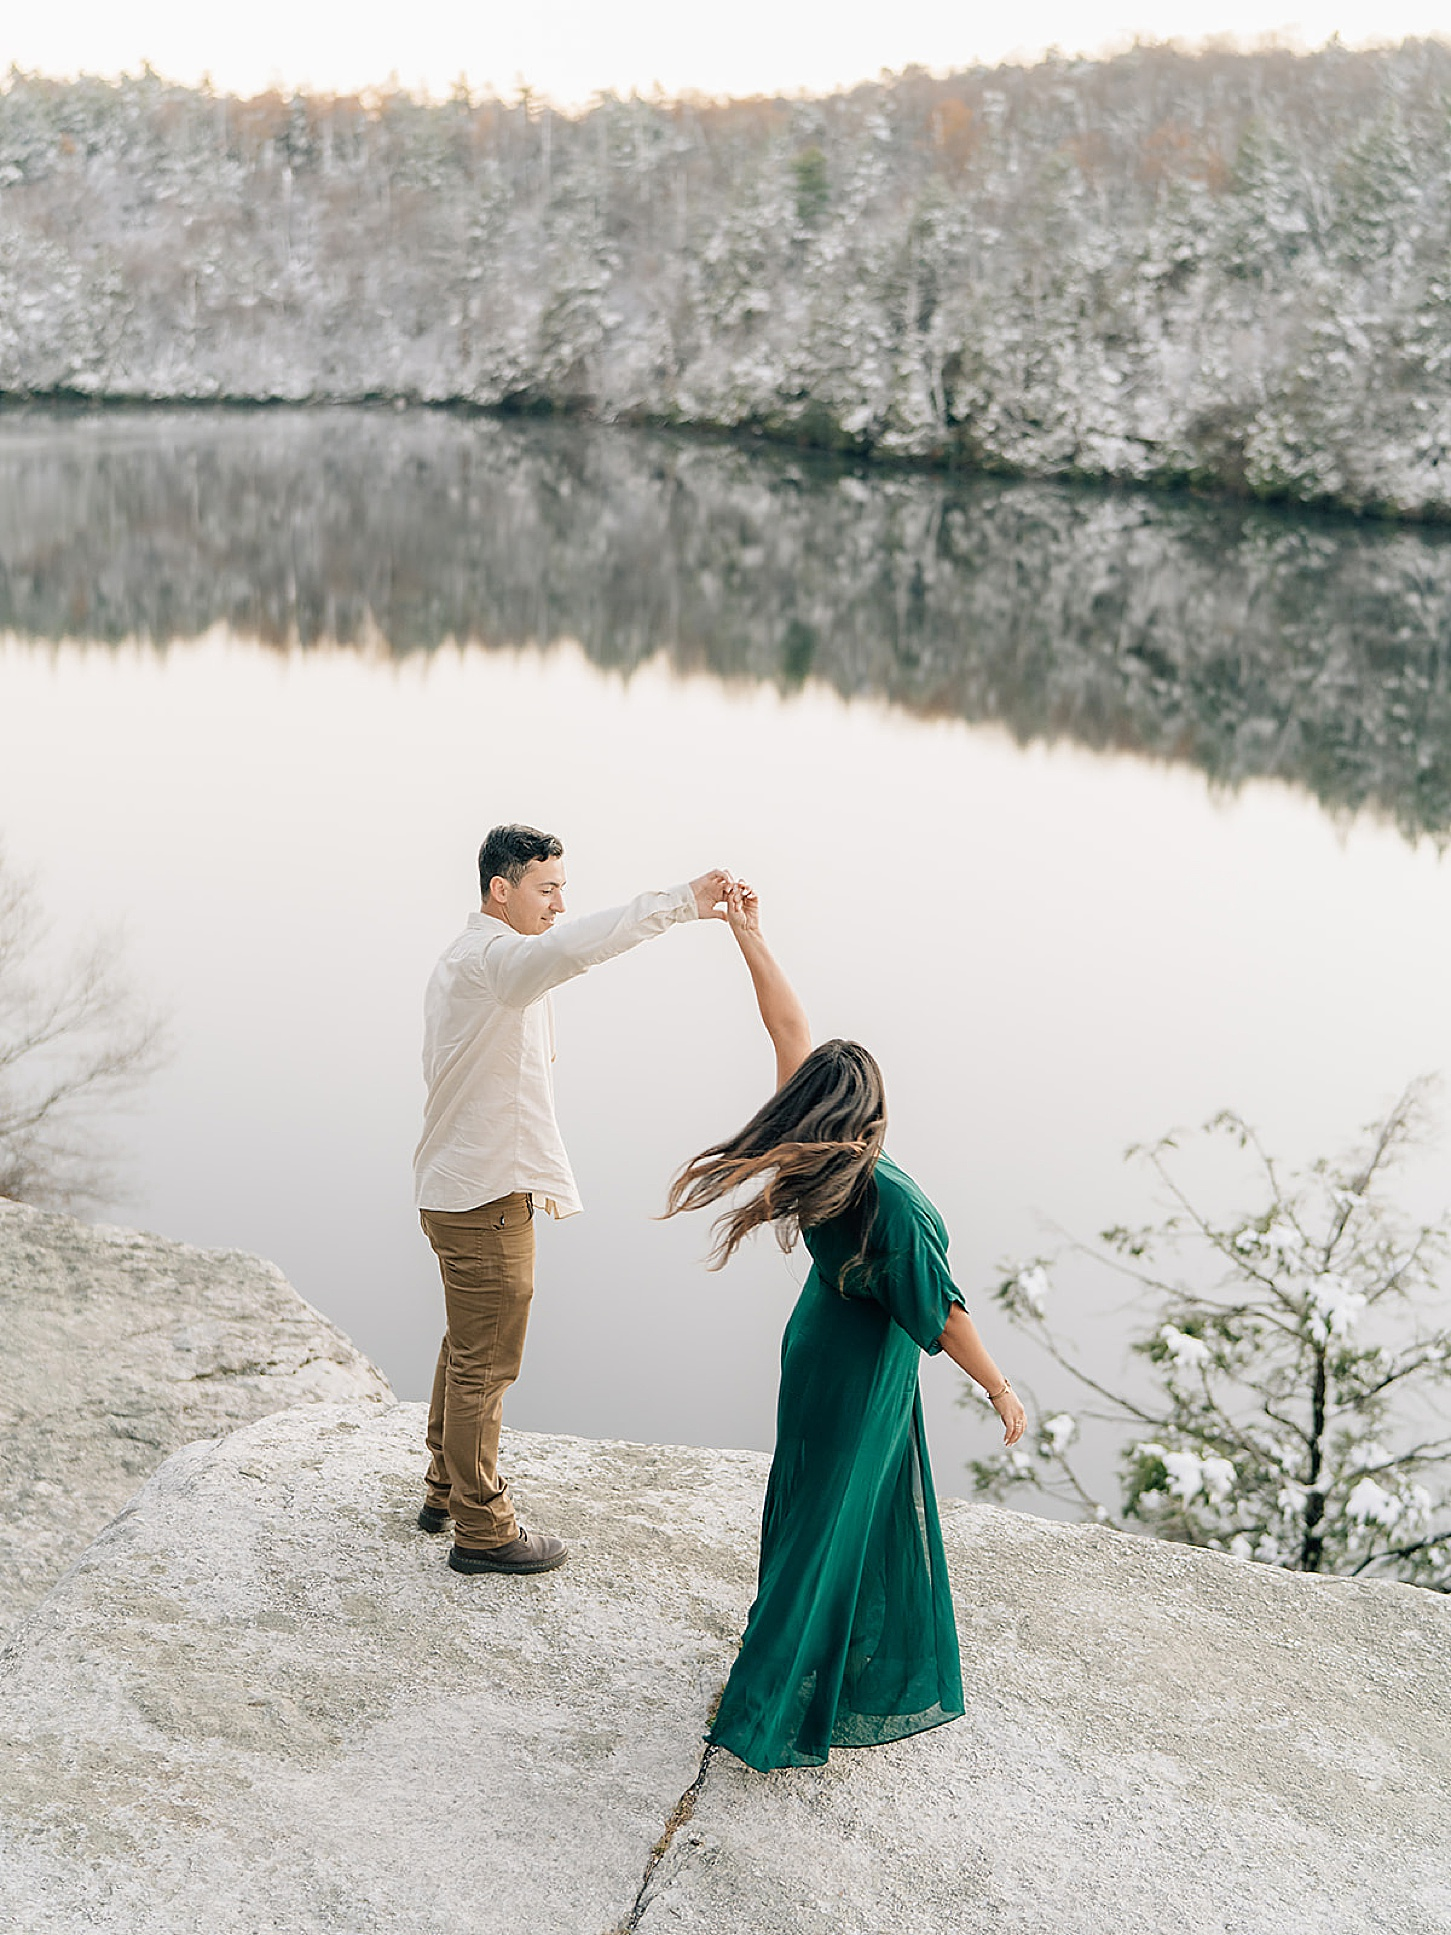 Vermont Destination Engagement Photography by Magdalena Studios 0018